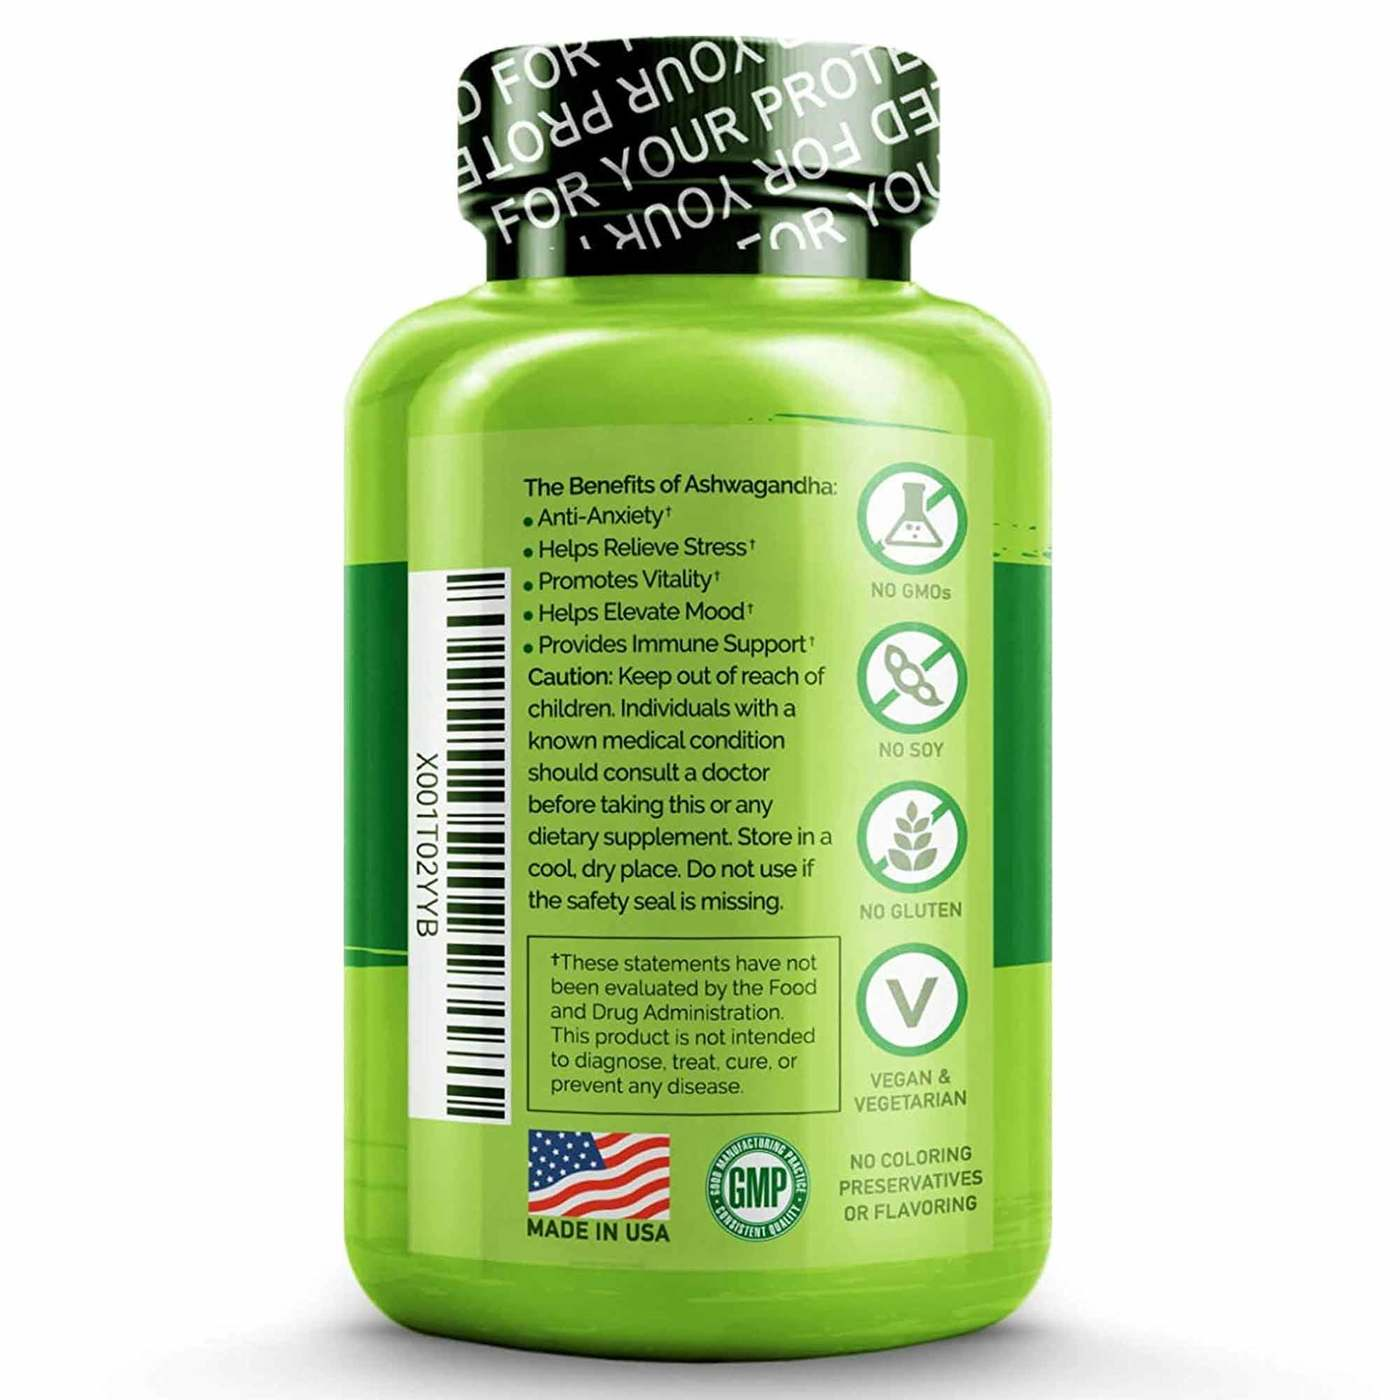 Nolvadex for sale in usa